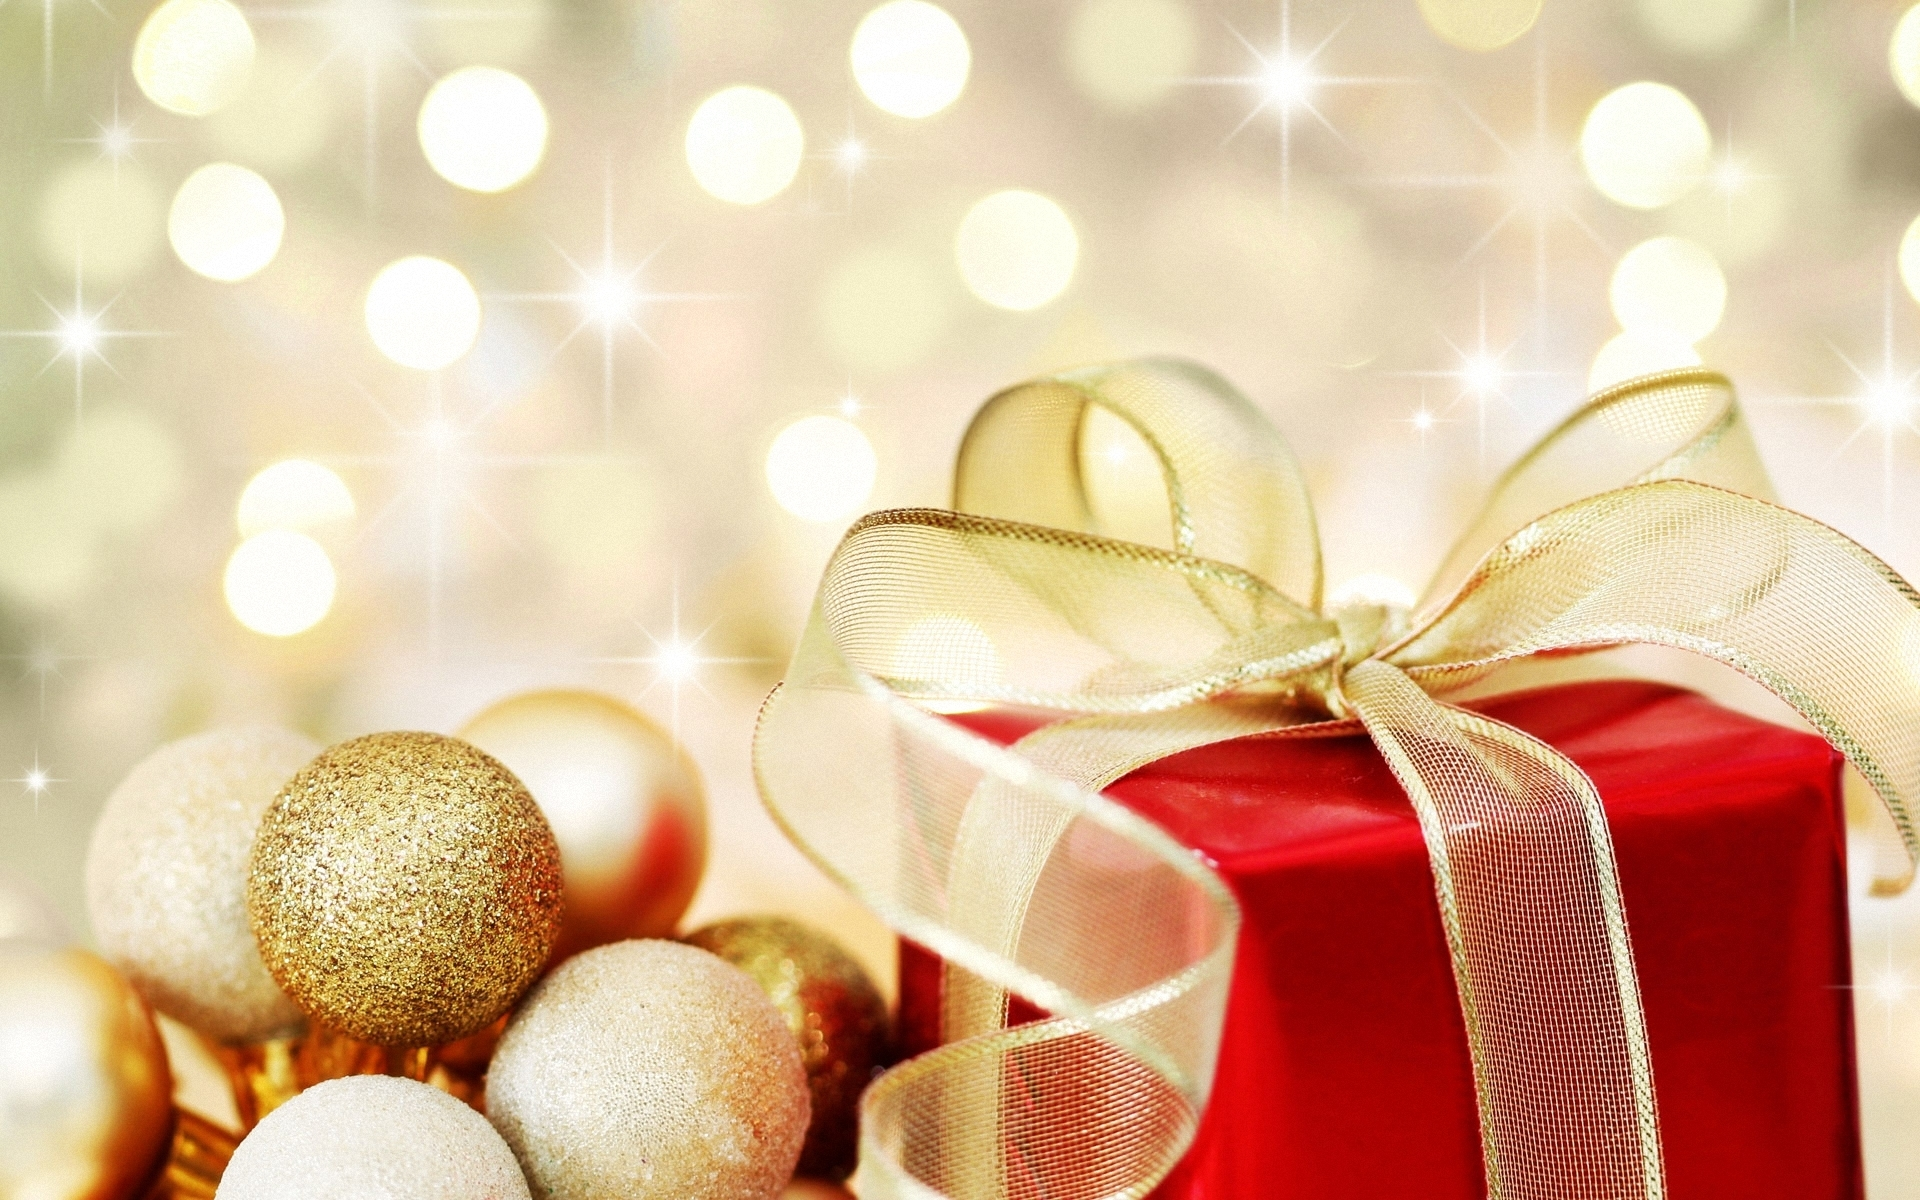 Christmas Ornaments Background 38750 1920x1200 px  HDWallSourcecom